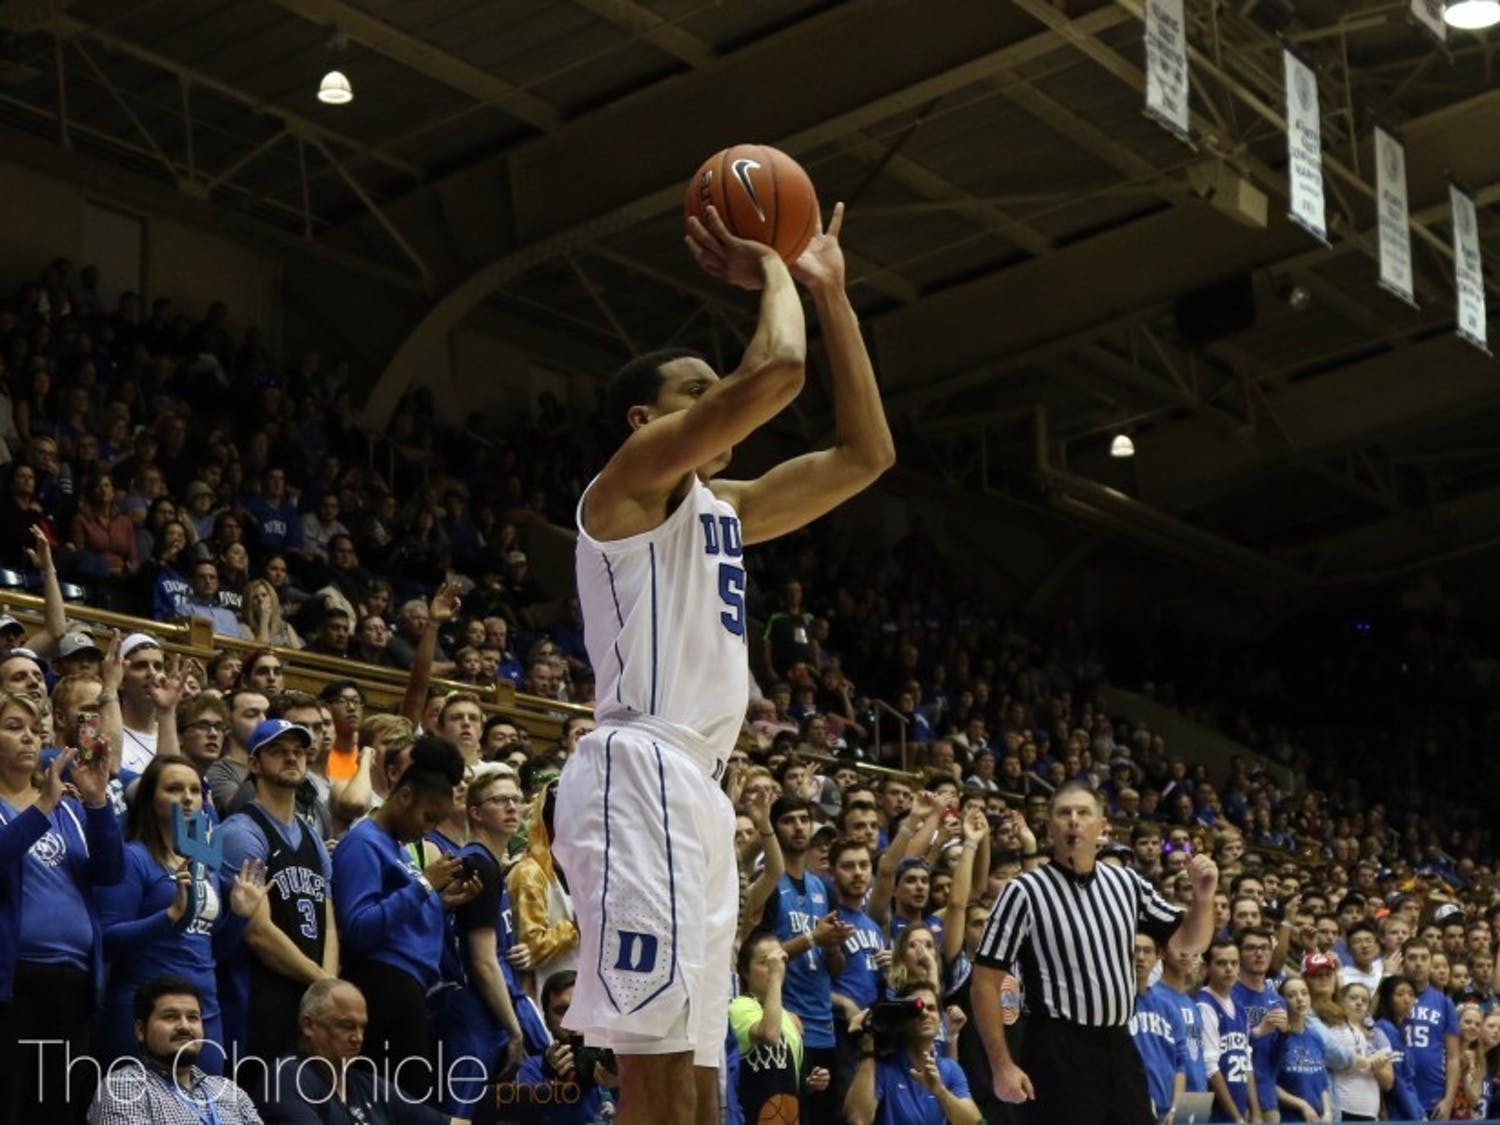 Justin Robinson notched his highest point total of the season in the first half alone.